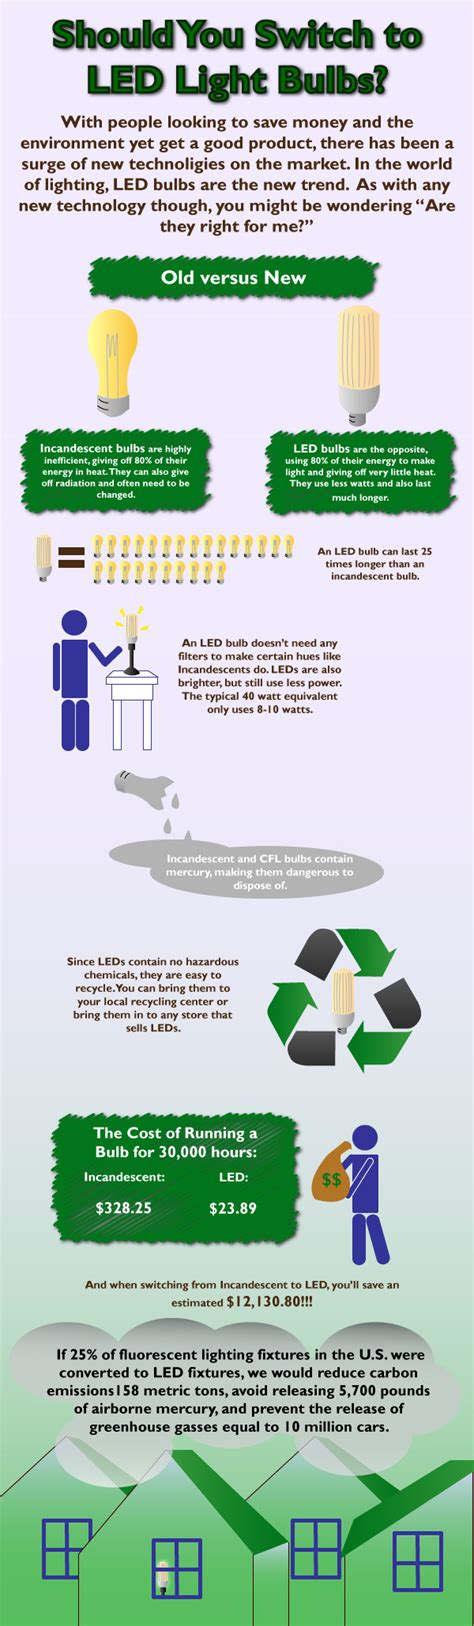 switching to led light bulbs infographic go green led bulbs